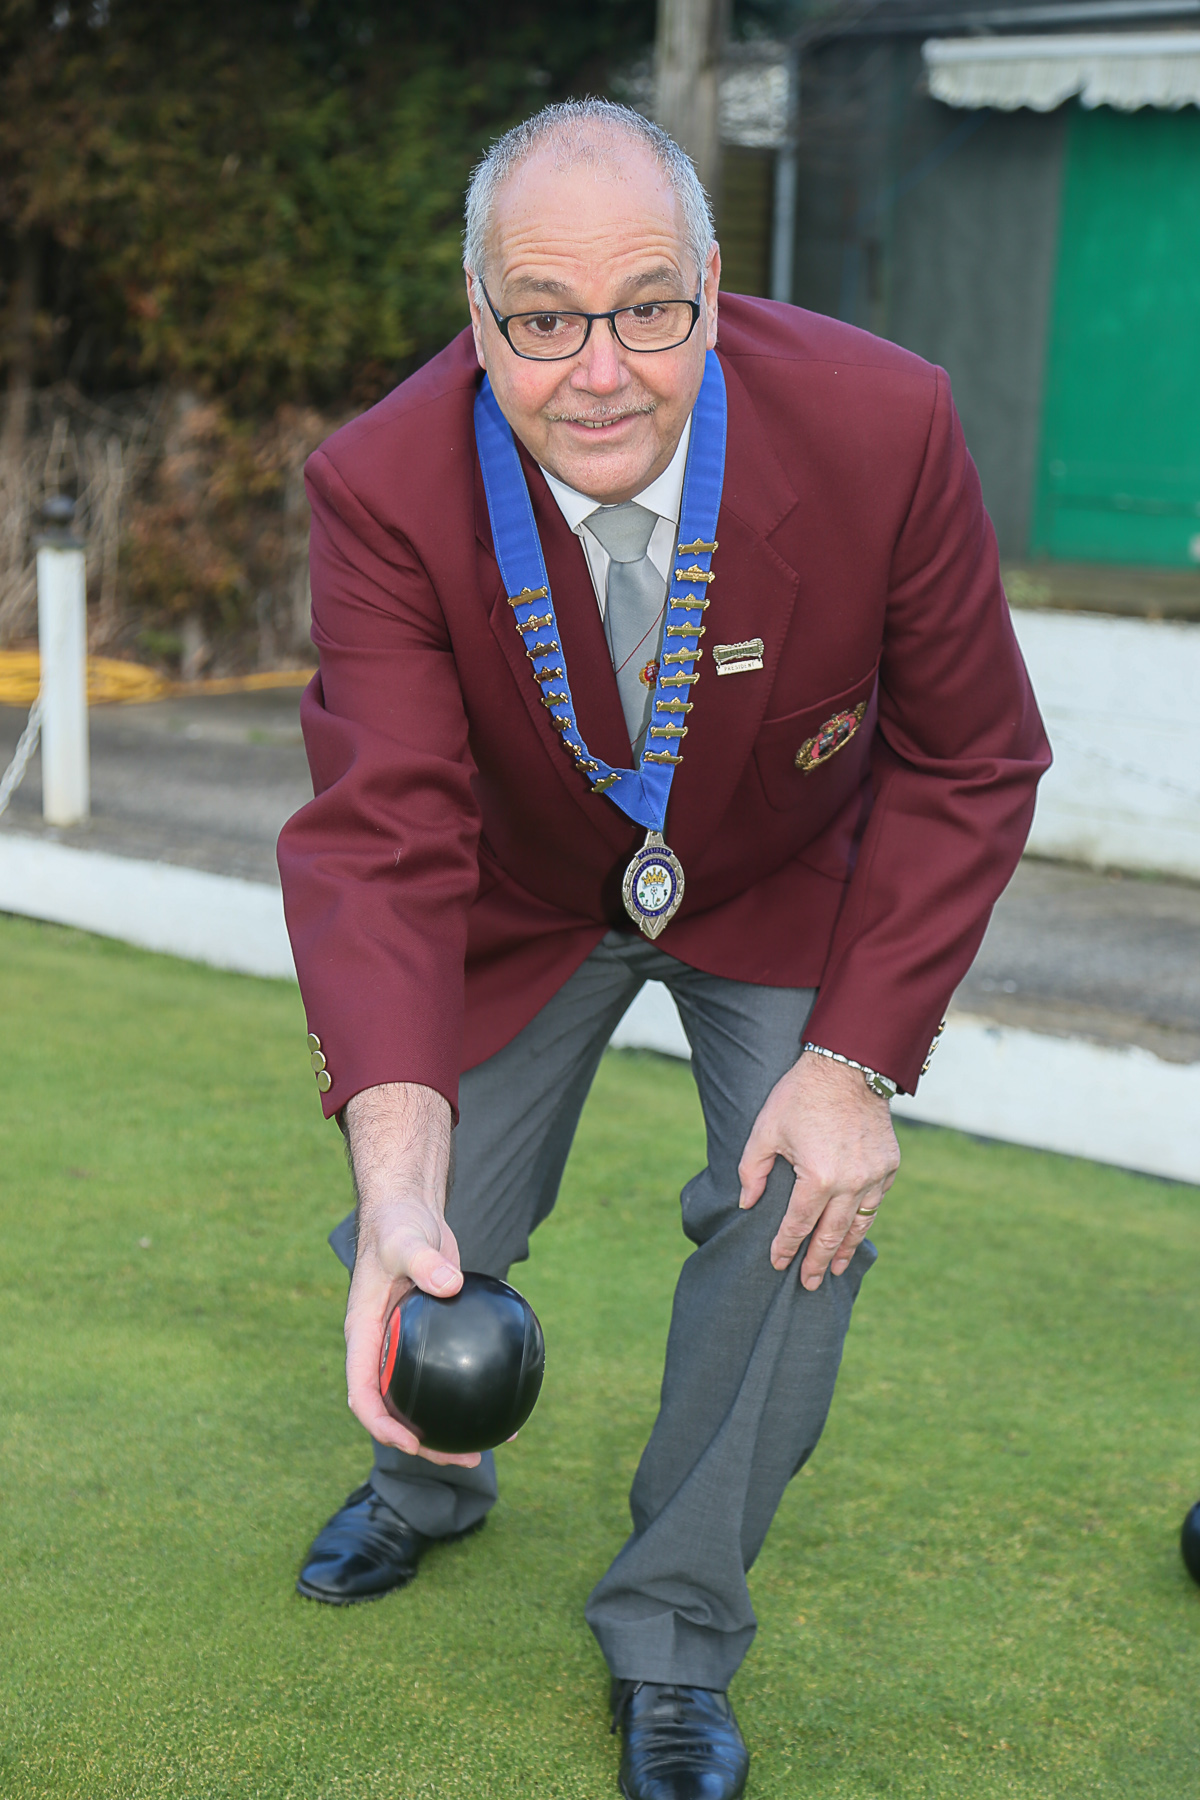 Chris Haselby, the new British Crown Green Bowling Association president